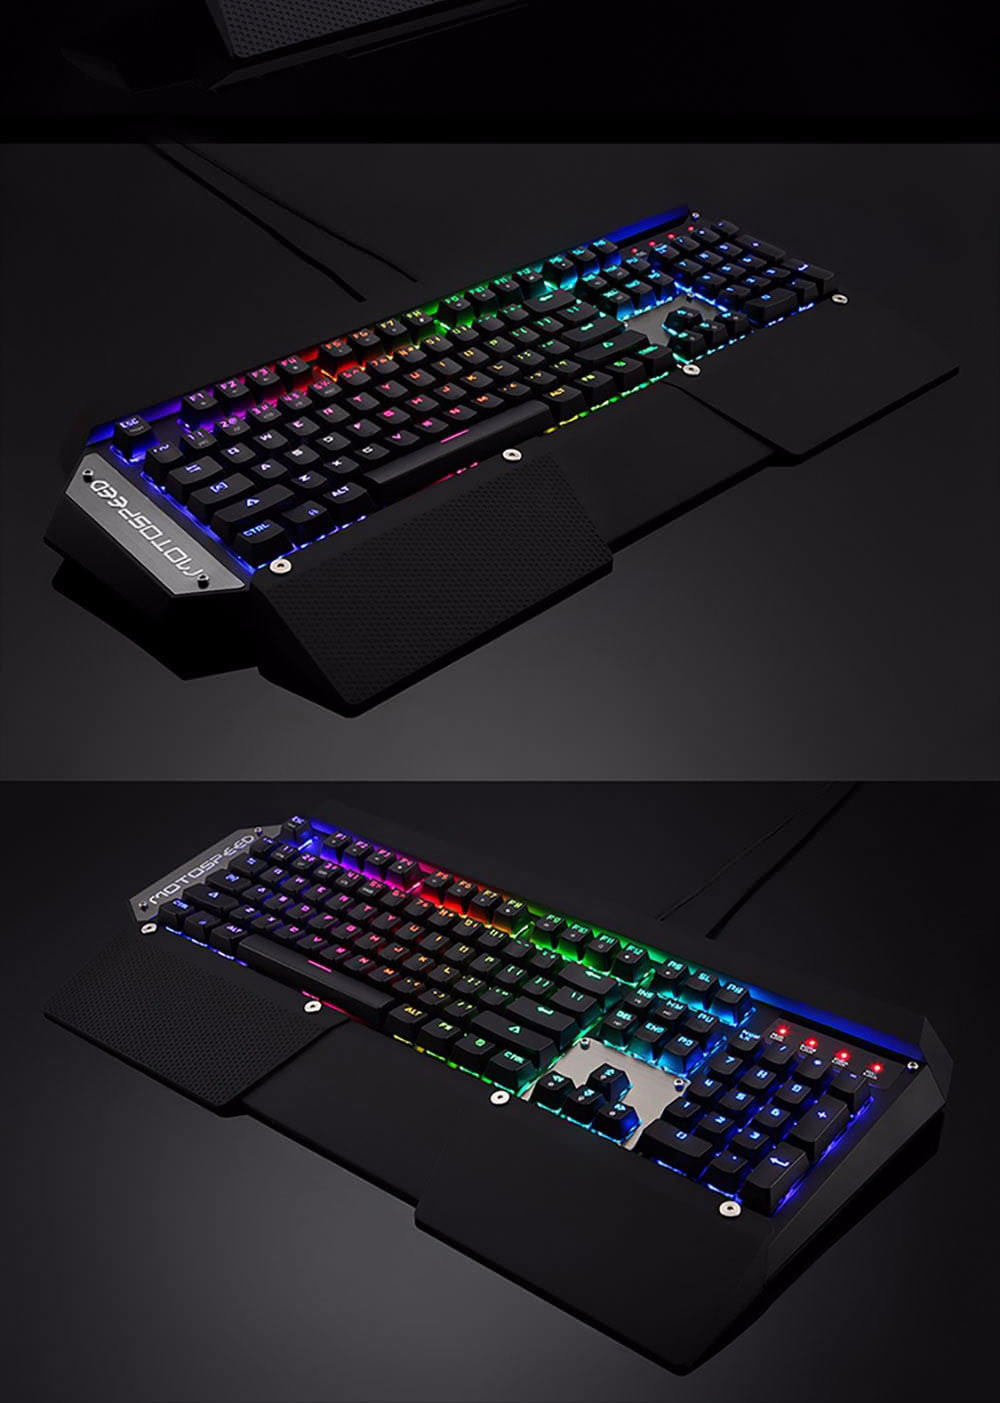 motospeed ck88 keyboard price